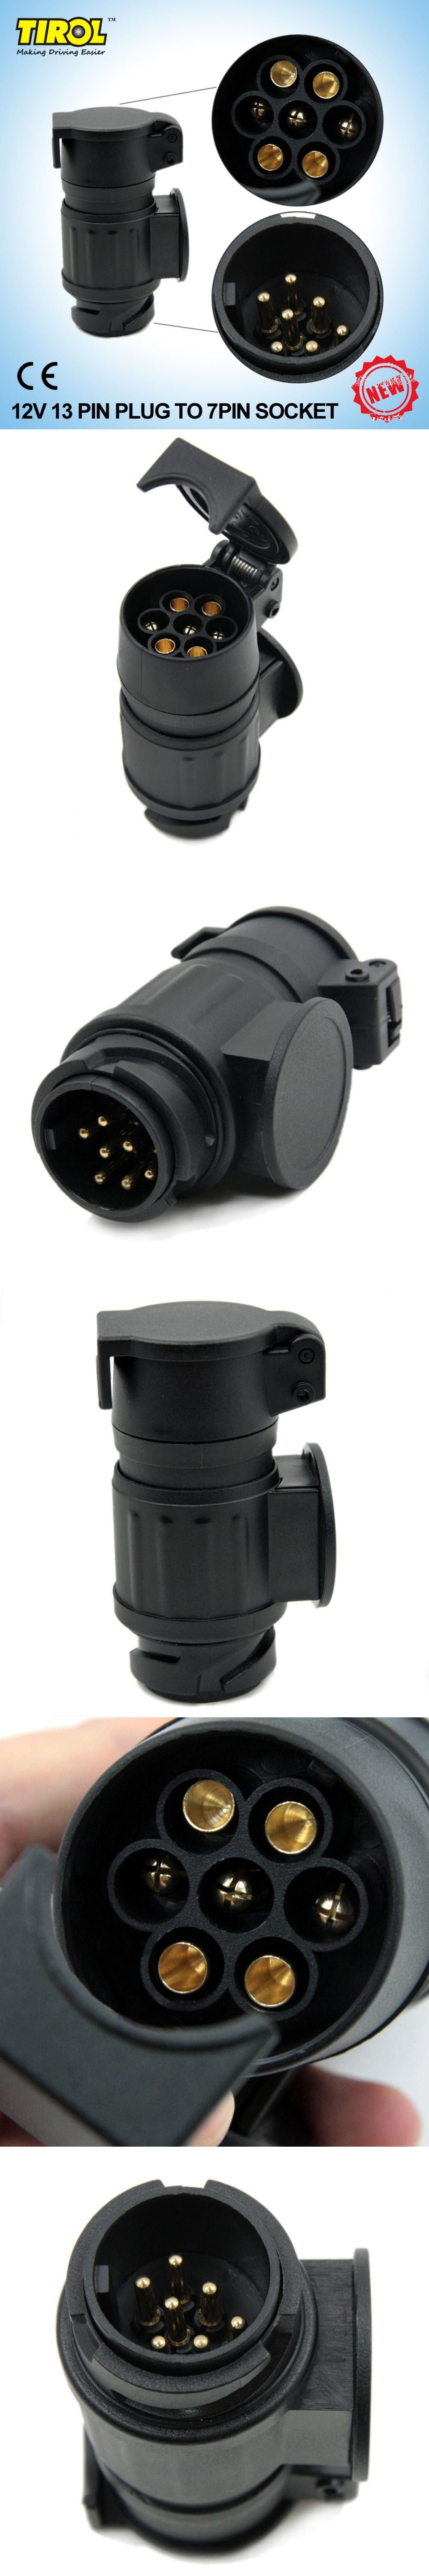 Tirol 13 To 7 Pin Trailer Adapter Black Frosted Materials Wiring Towbar Socket Connector 12v Towing